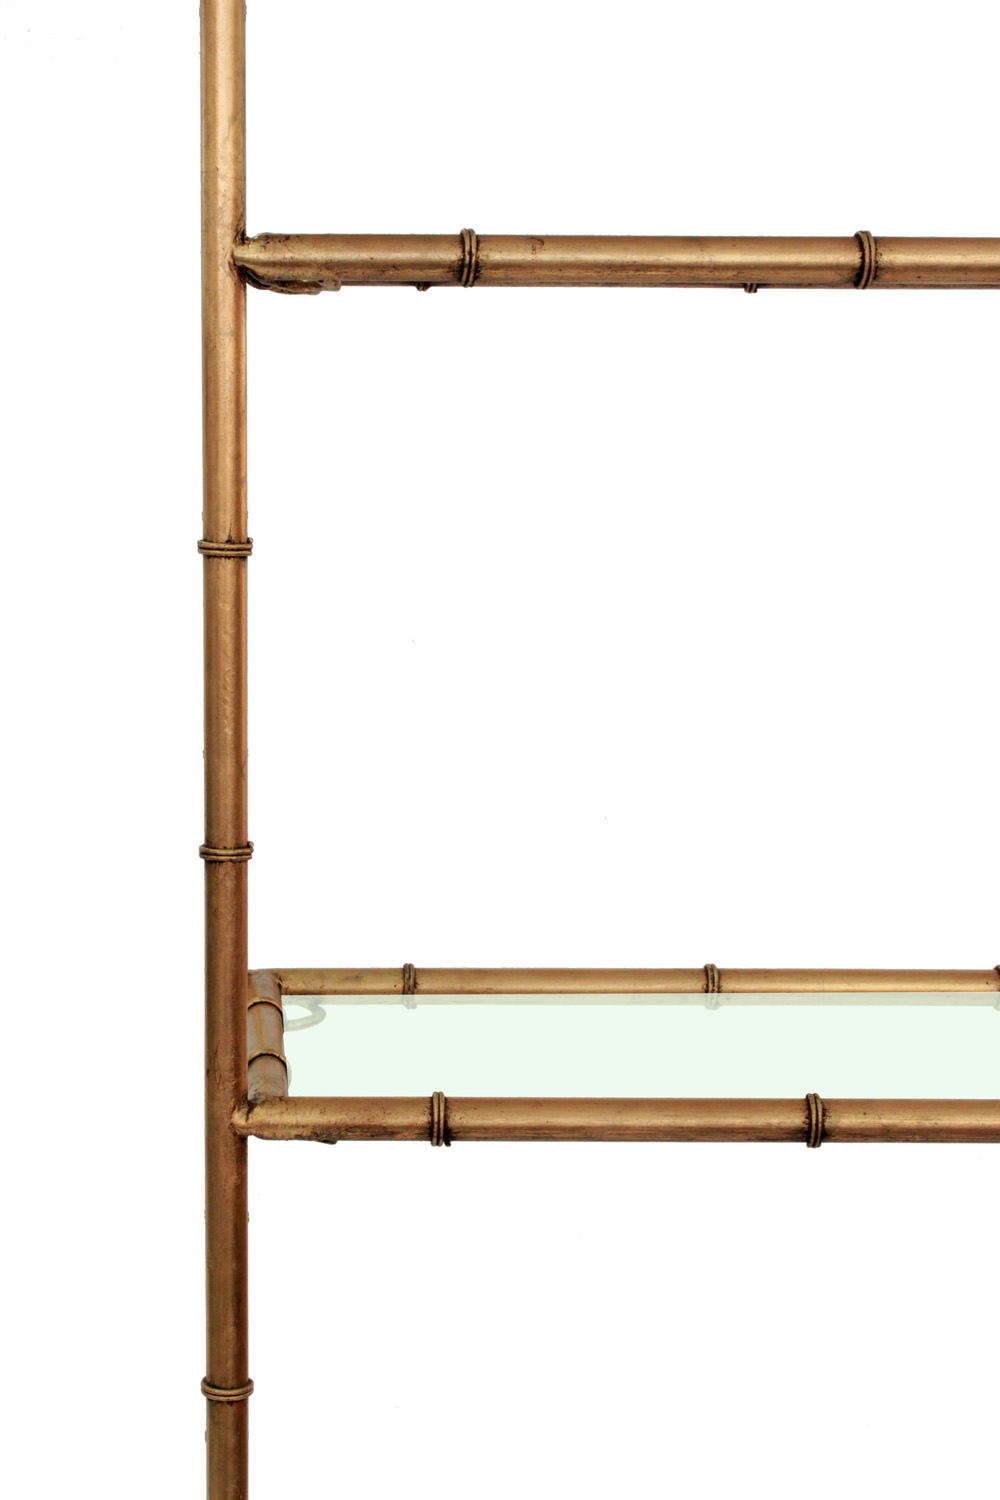 70's 95 gilded bamboo motif etagere10 detail2 hires.jpg